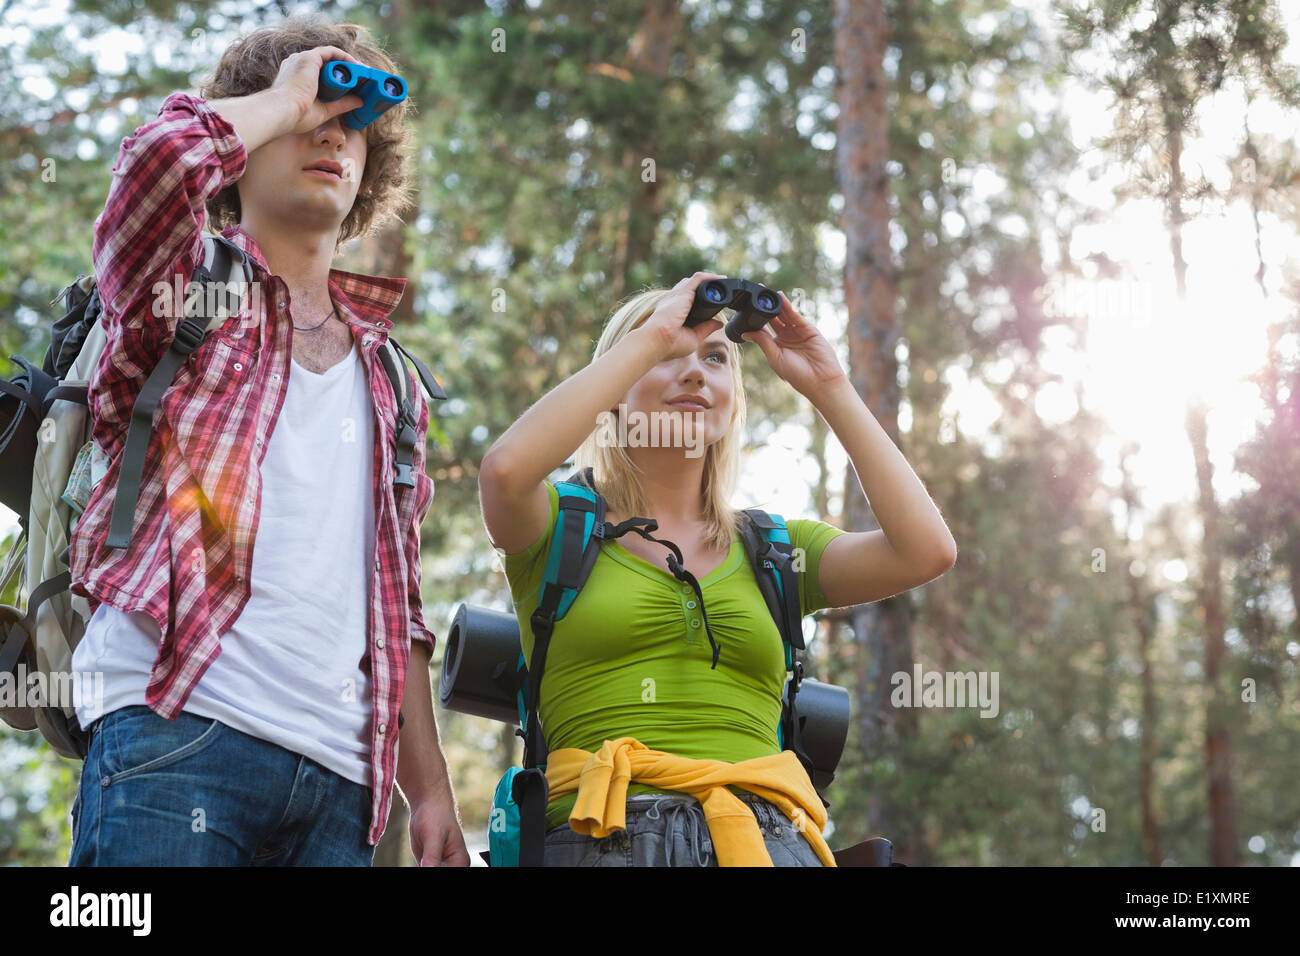 Hiking couple using binoculars in forest - Stock Image